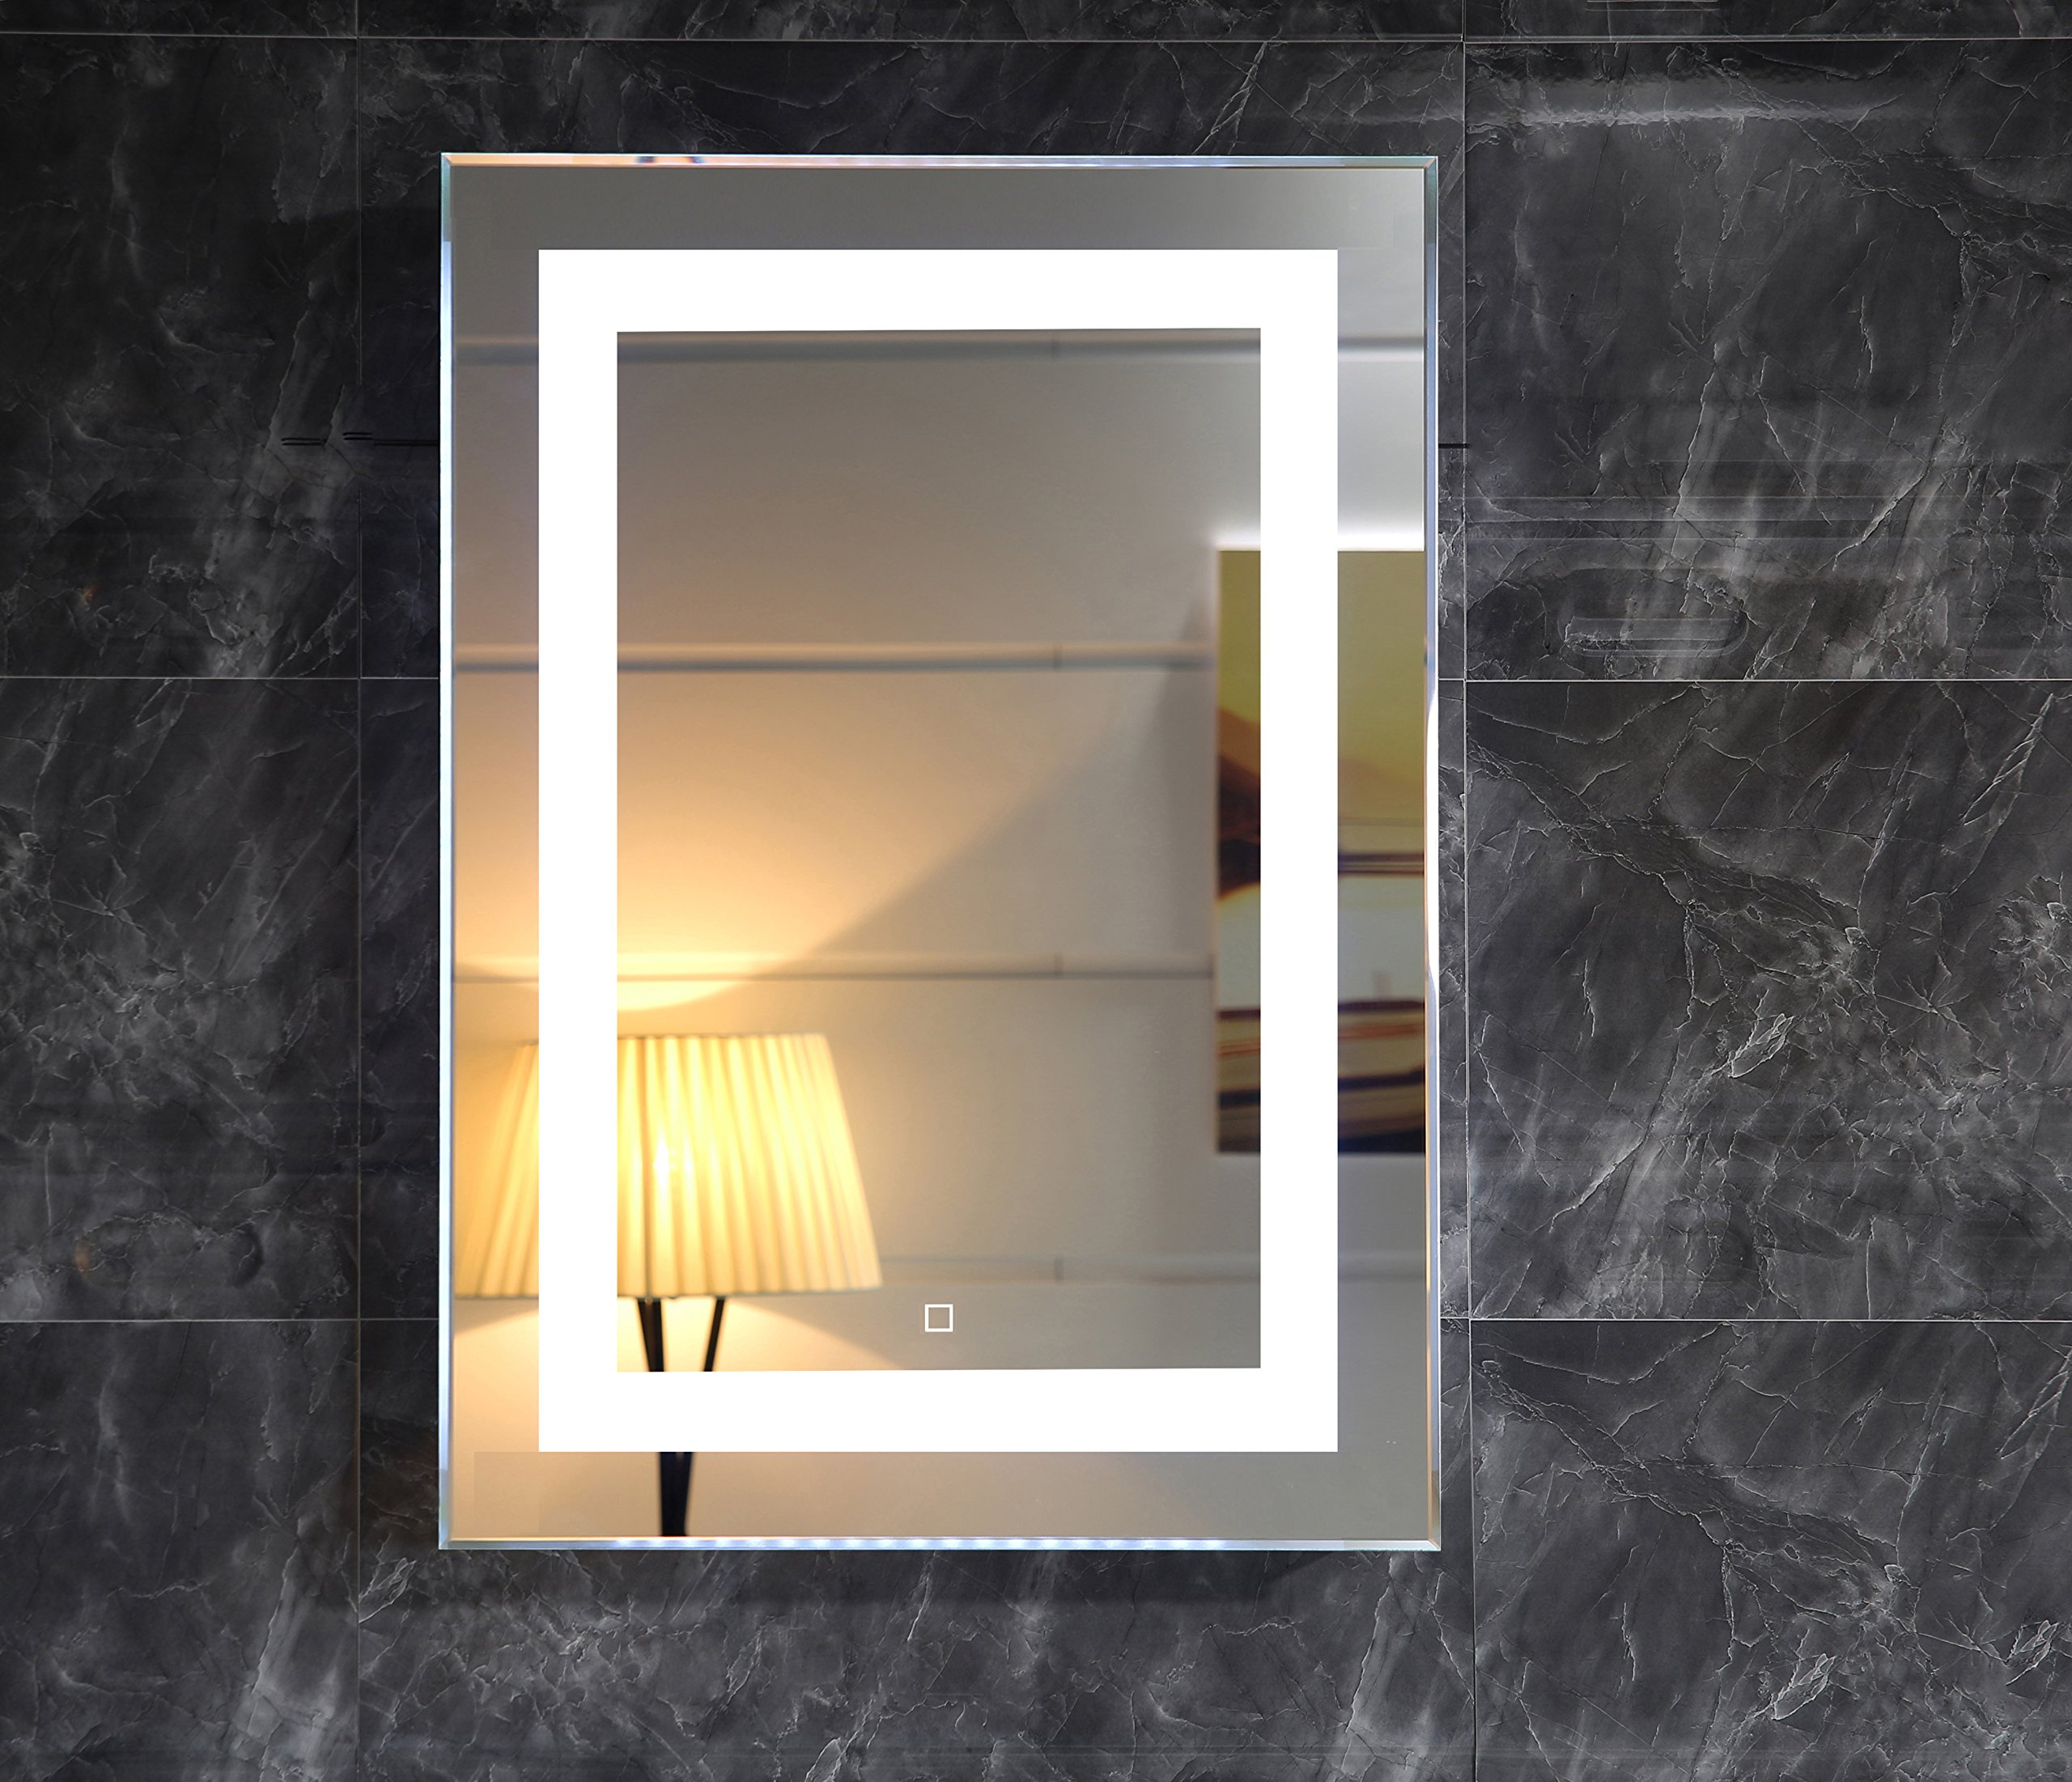 20X28 Inch Wall Mounted Led Lighted Bathroom Mirror With Touch Switch(GS099-2028) (20x28 inch)